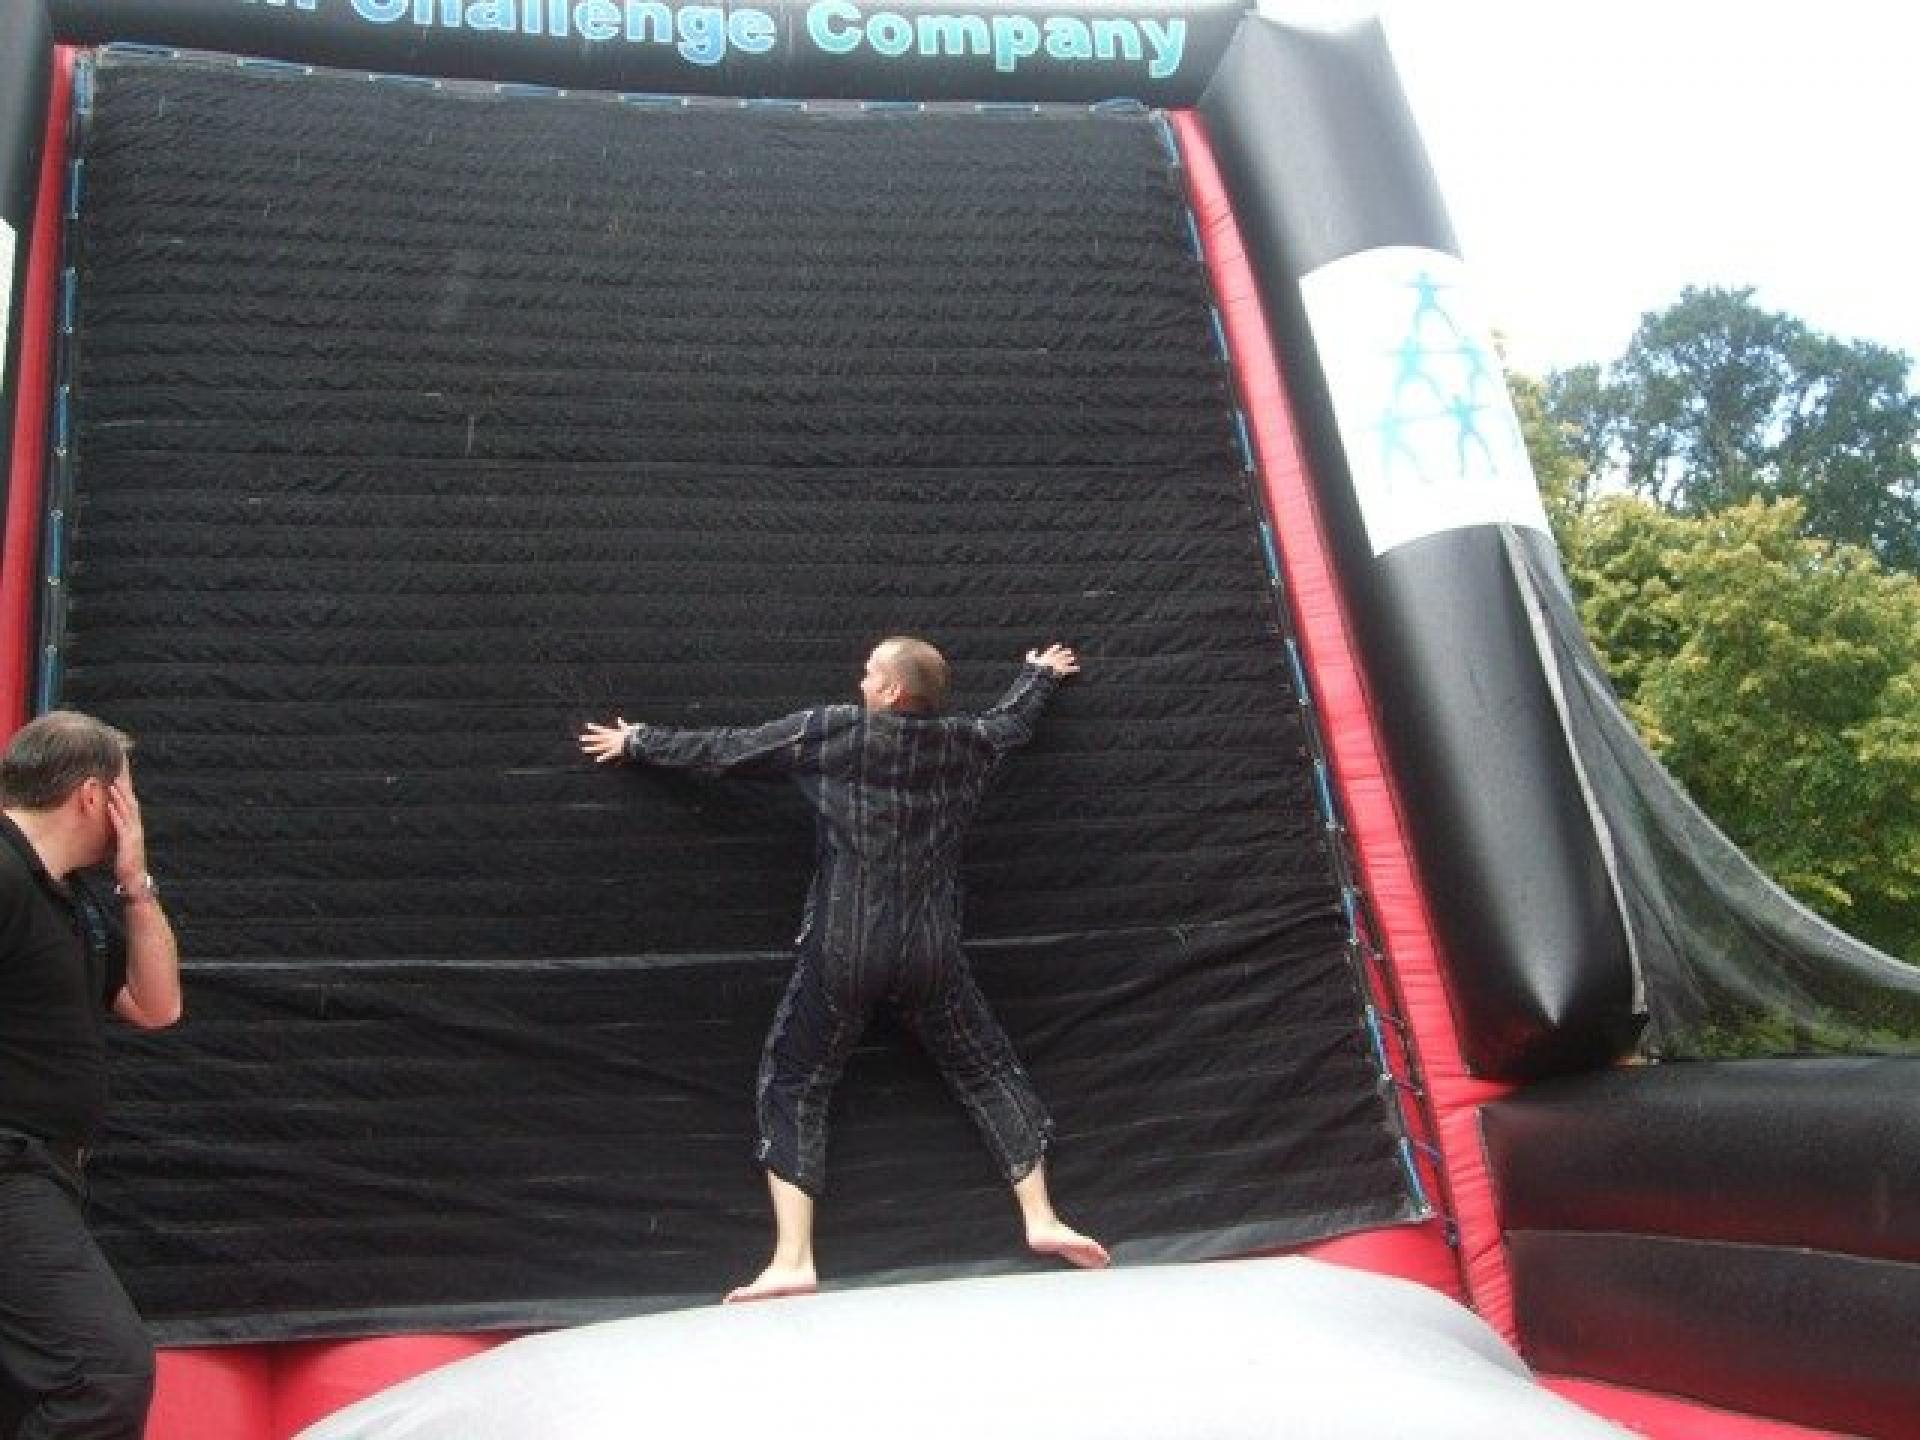 Corporate Family Fun Days, fun filled inflatables, games and competition